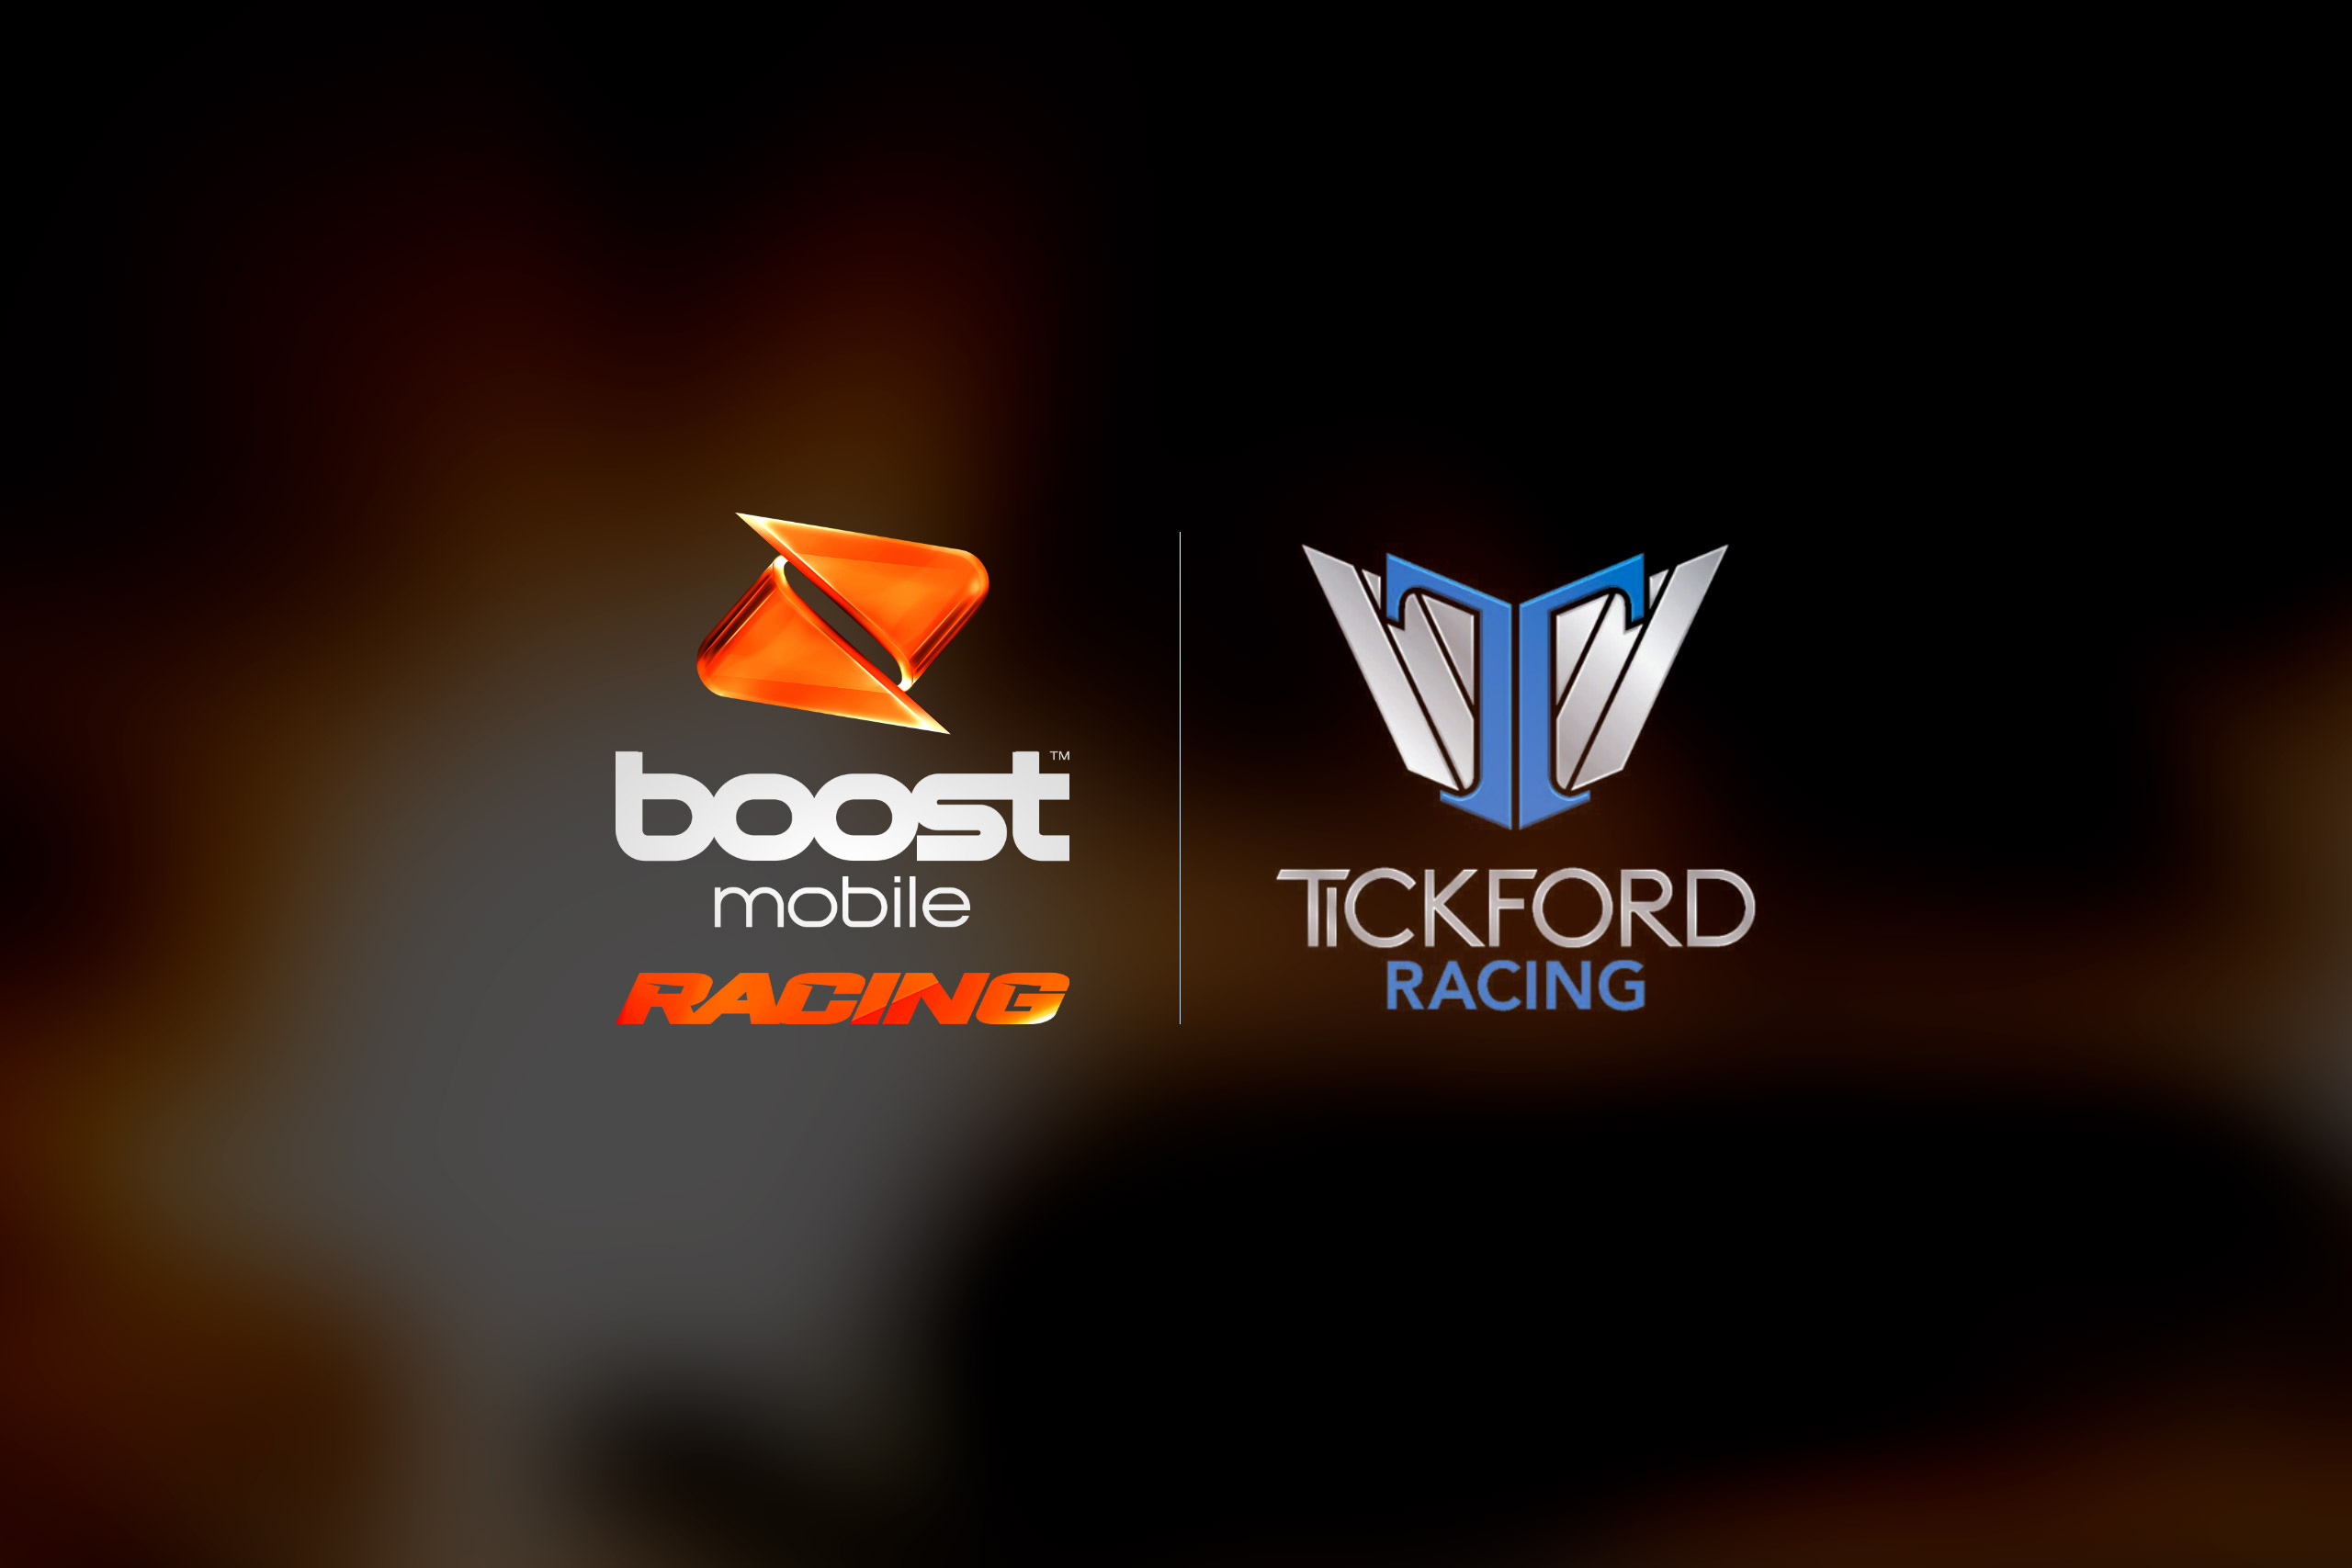 Boost Mobile Racing joins forces with Tickford Racing